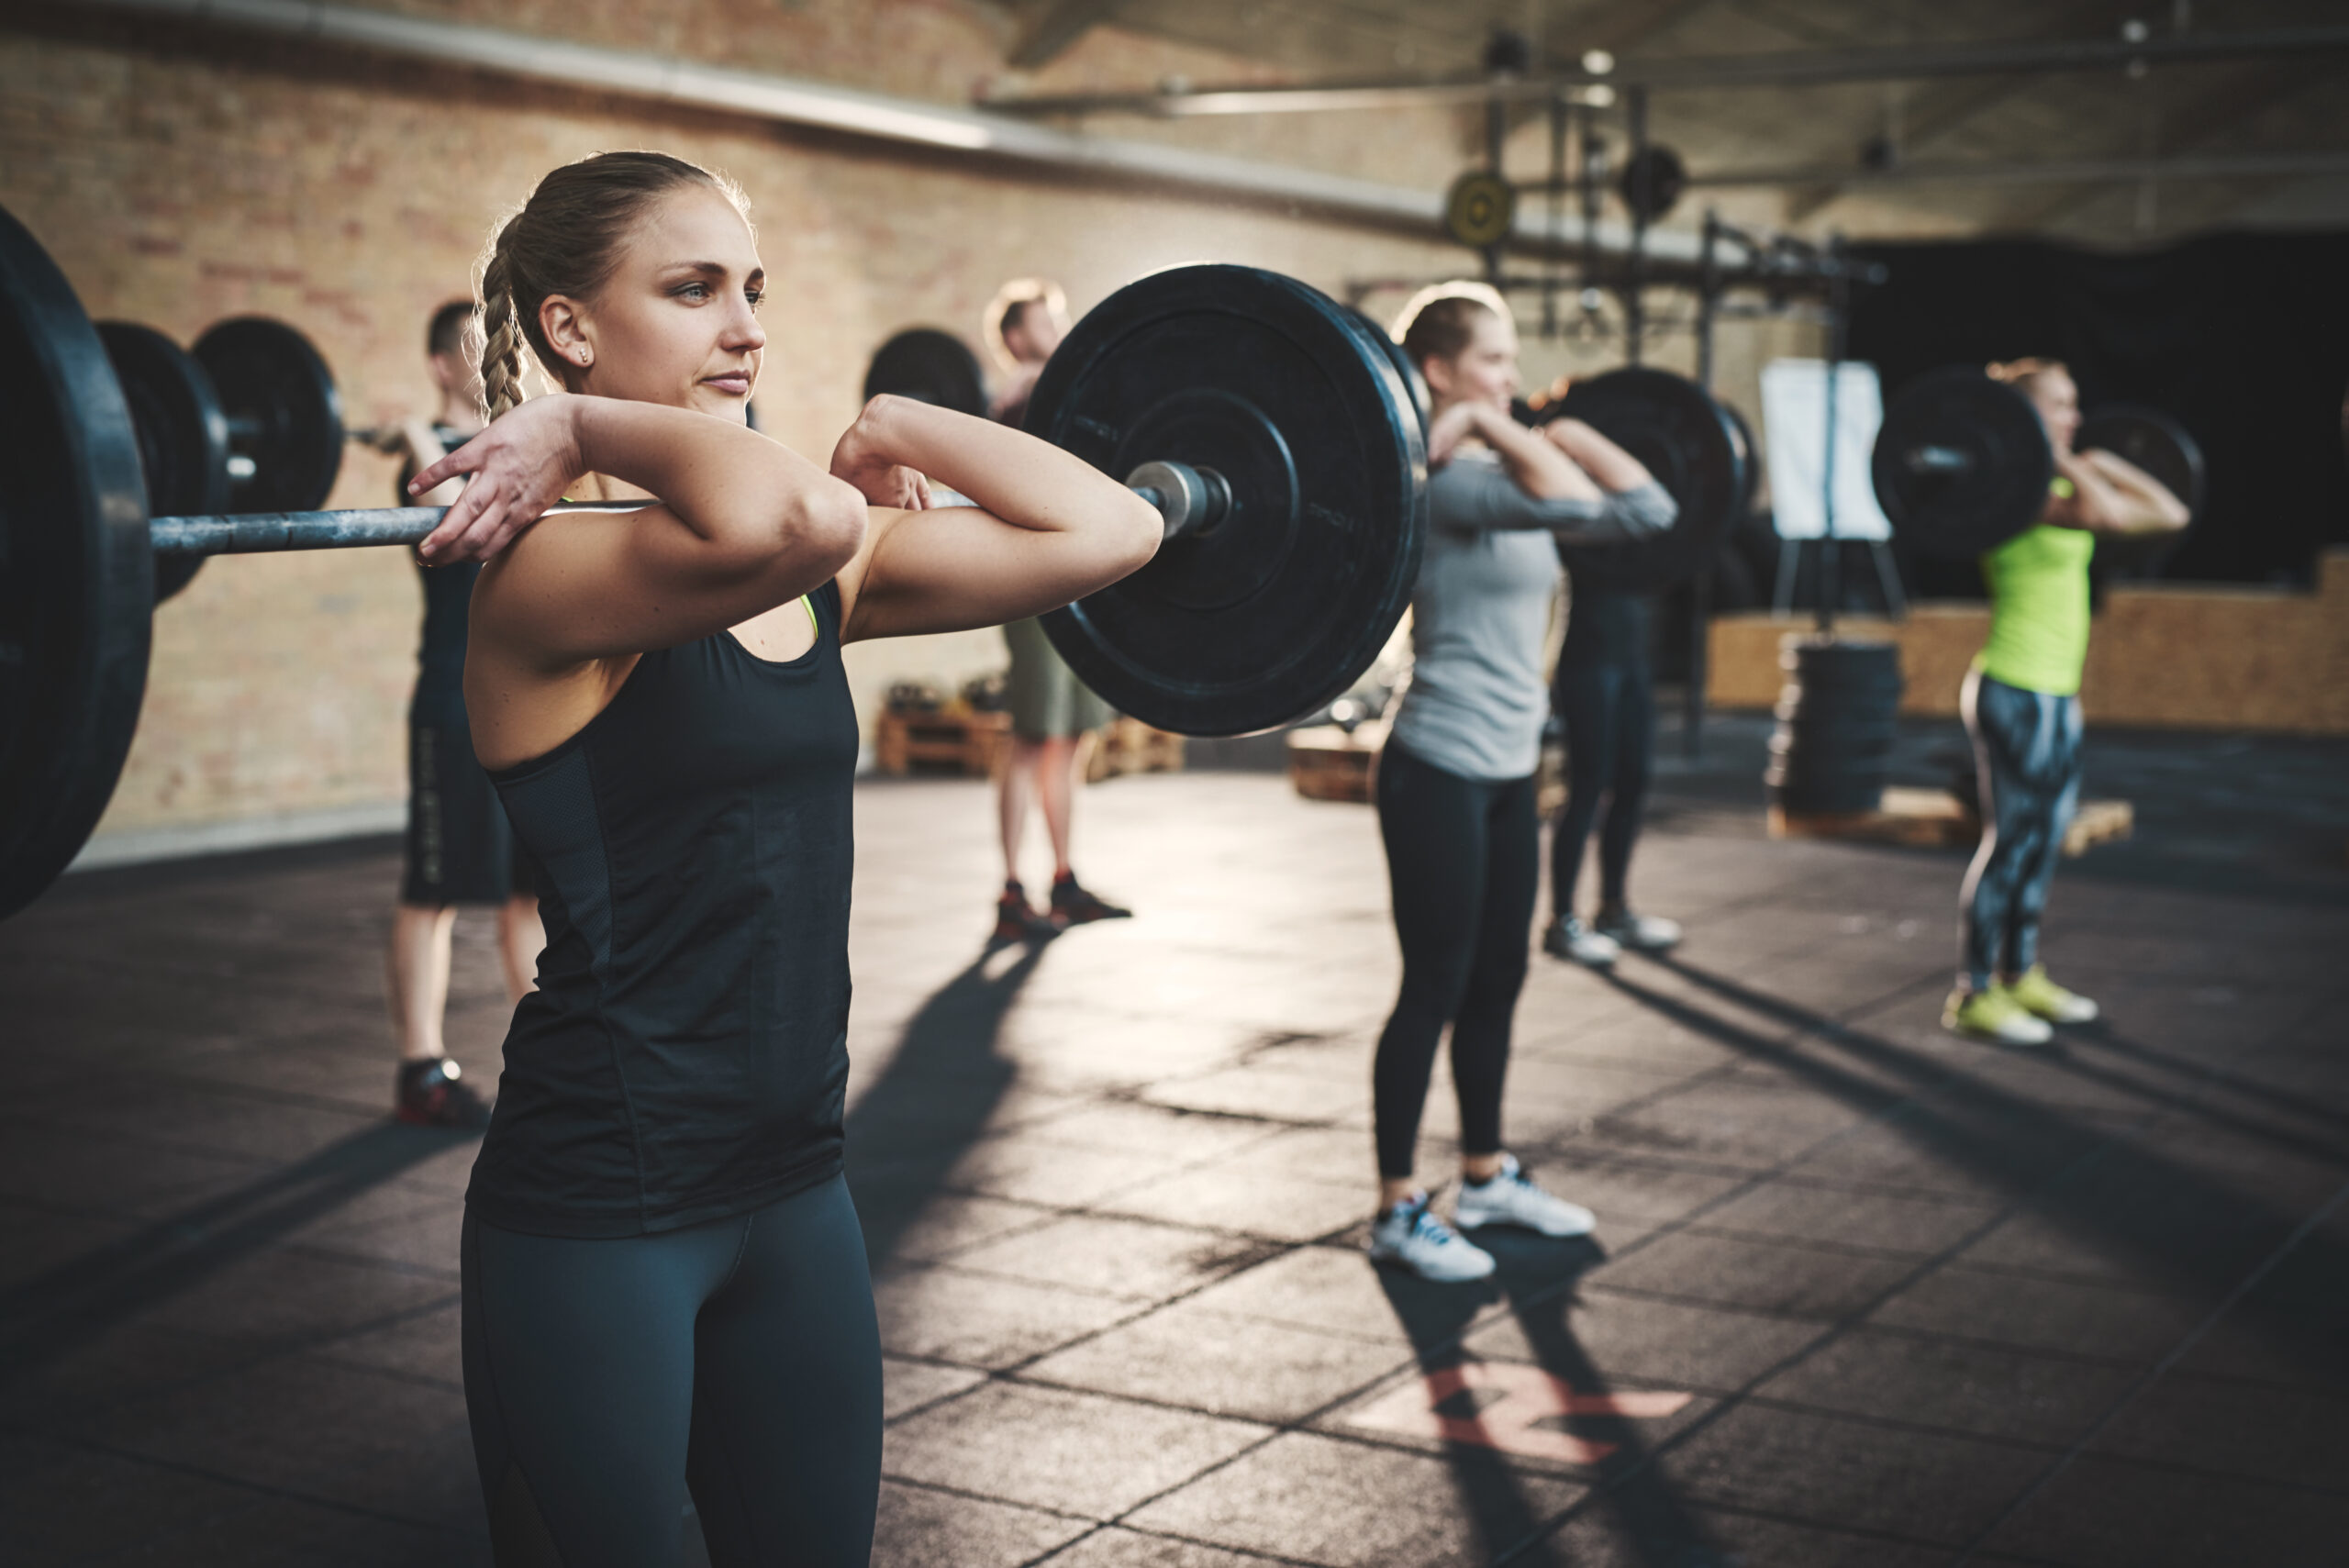 Three women lifting weights during a group fitness class.